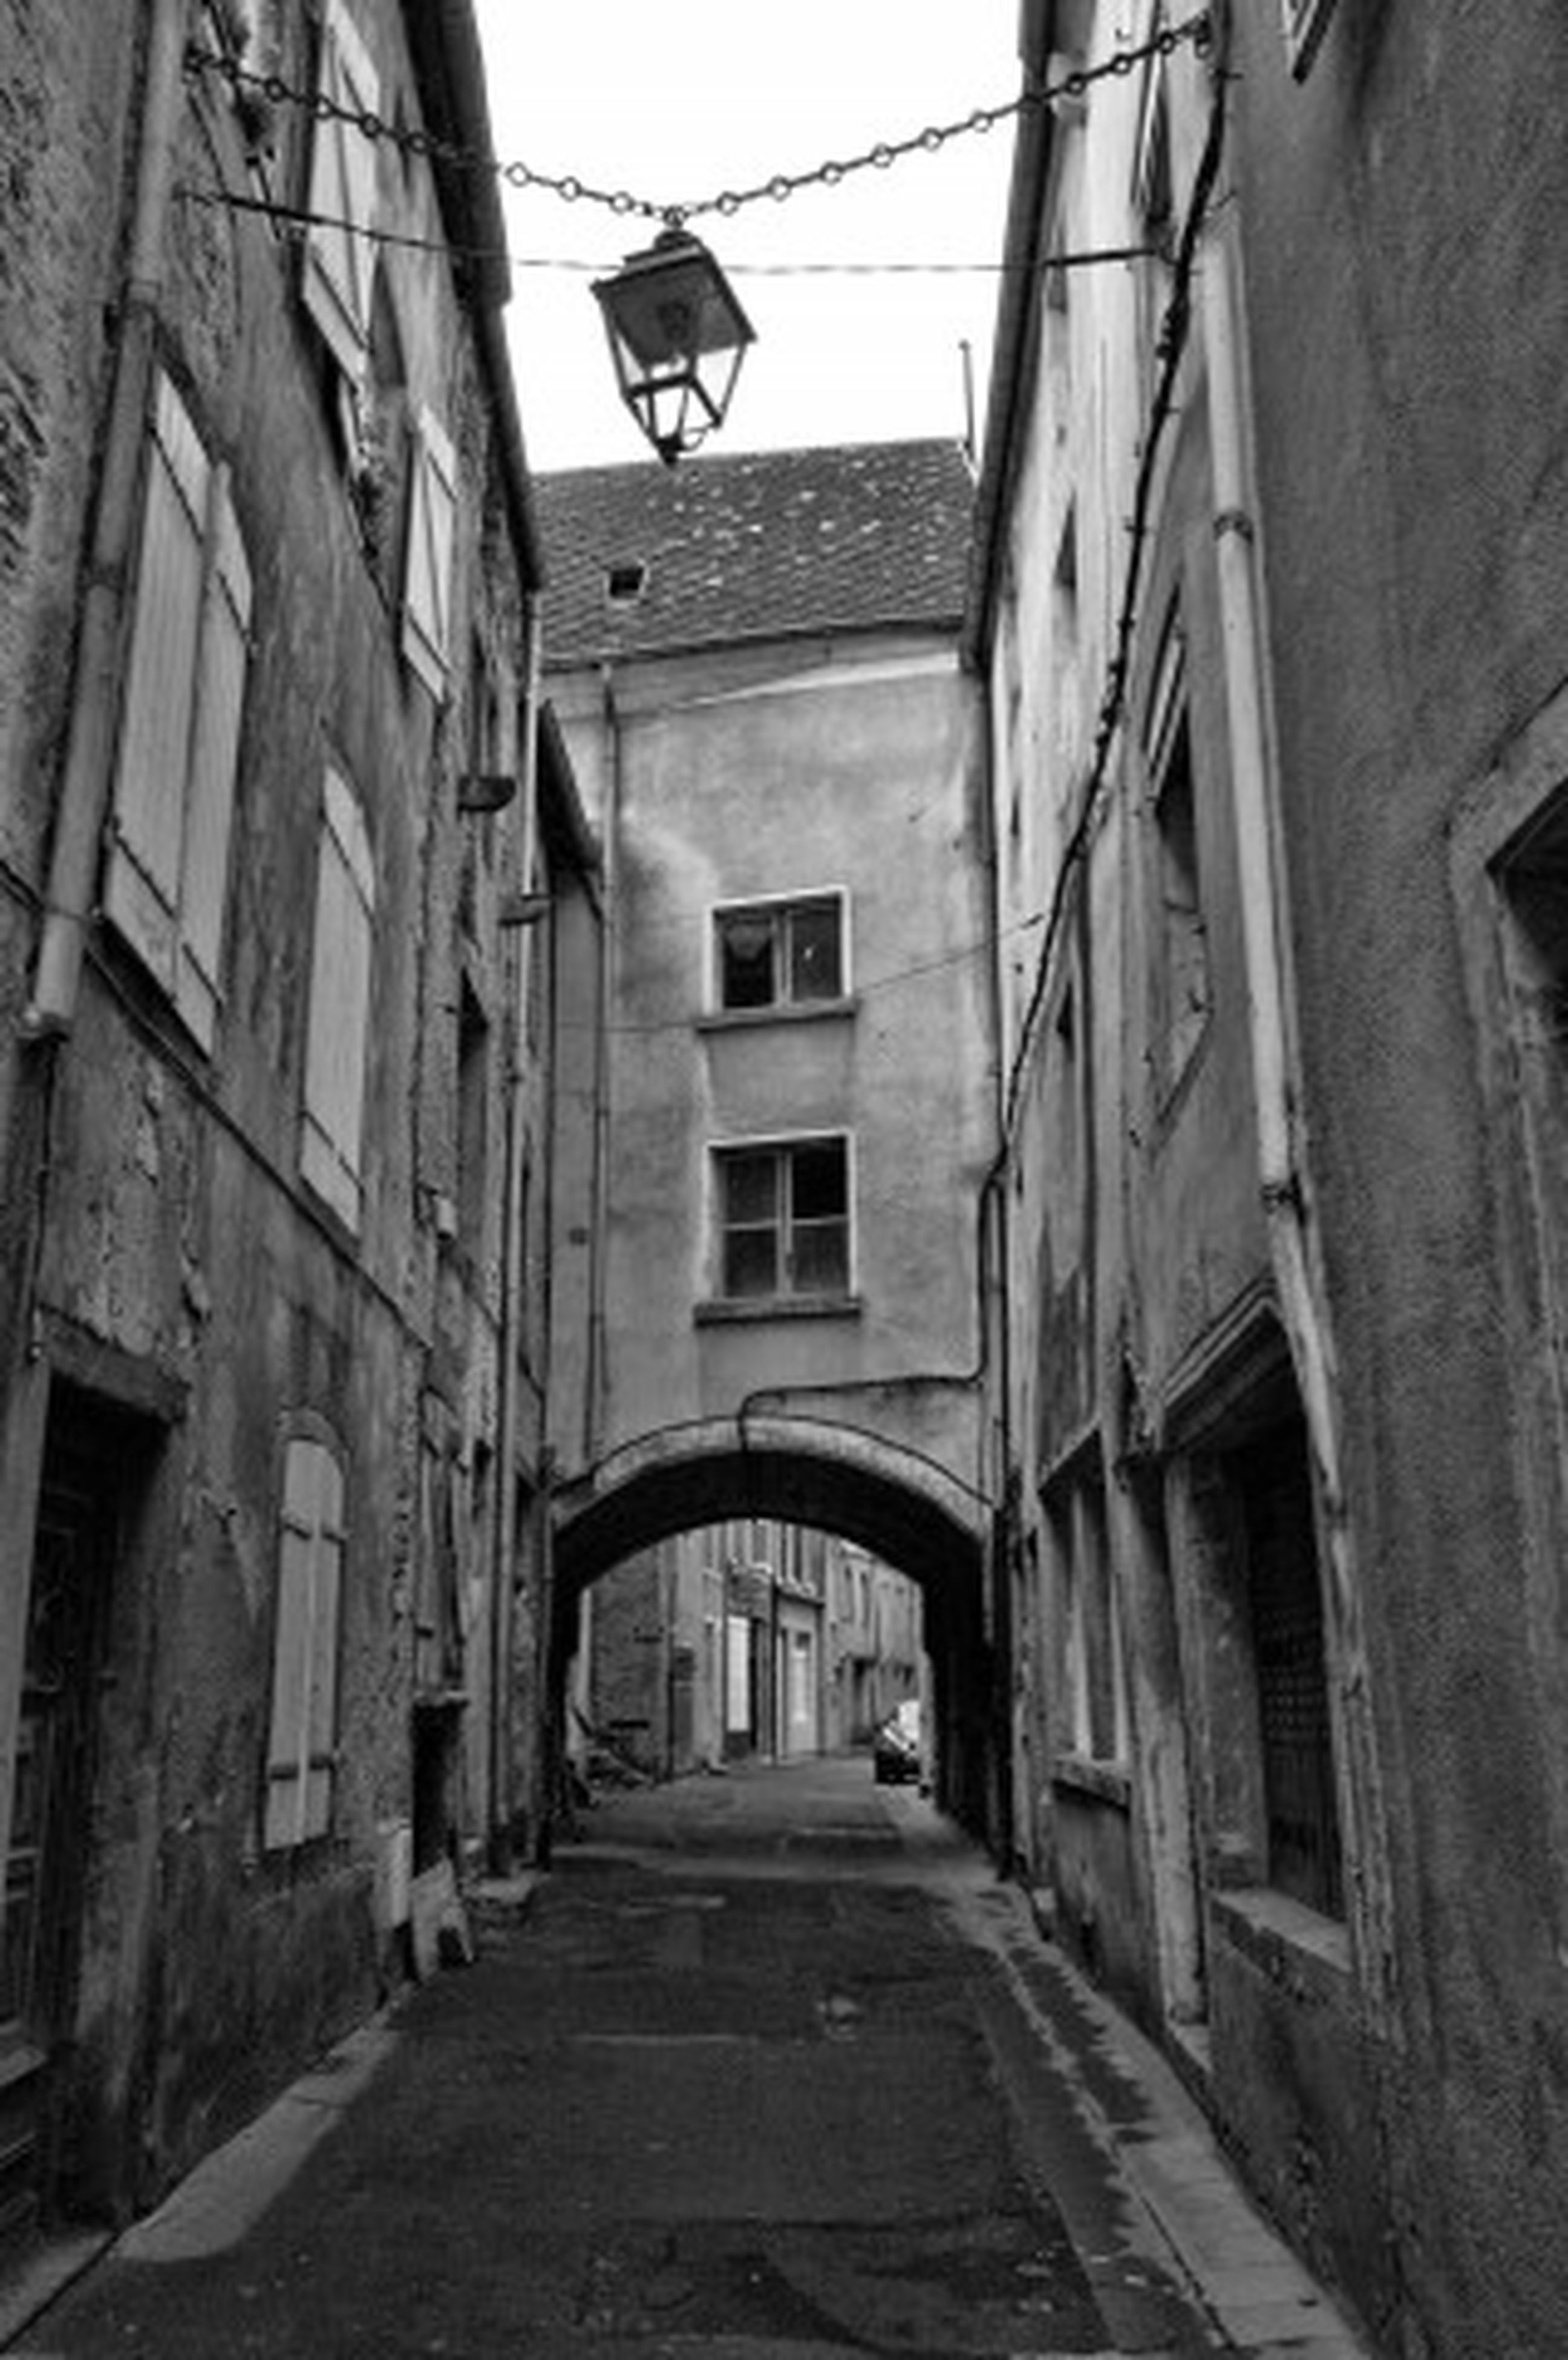 architecture, built structure, building exterior, the way forward, narrow, alley, residential building, residential structure, building, diminishing perspective, street, house, vanishing point, town, old town, day, window, old, empty, cobblestone